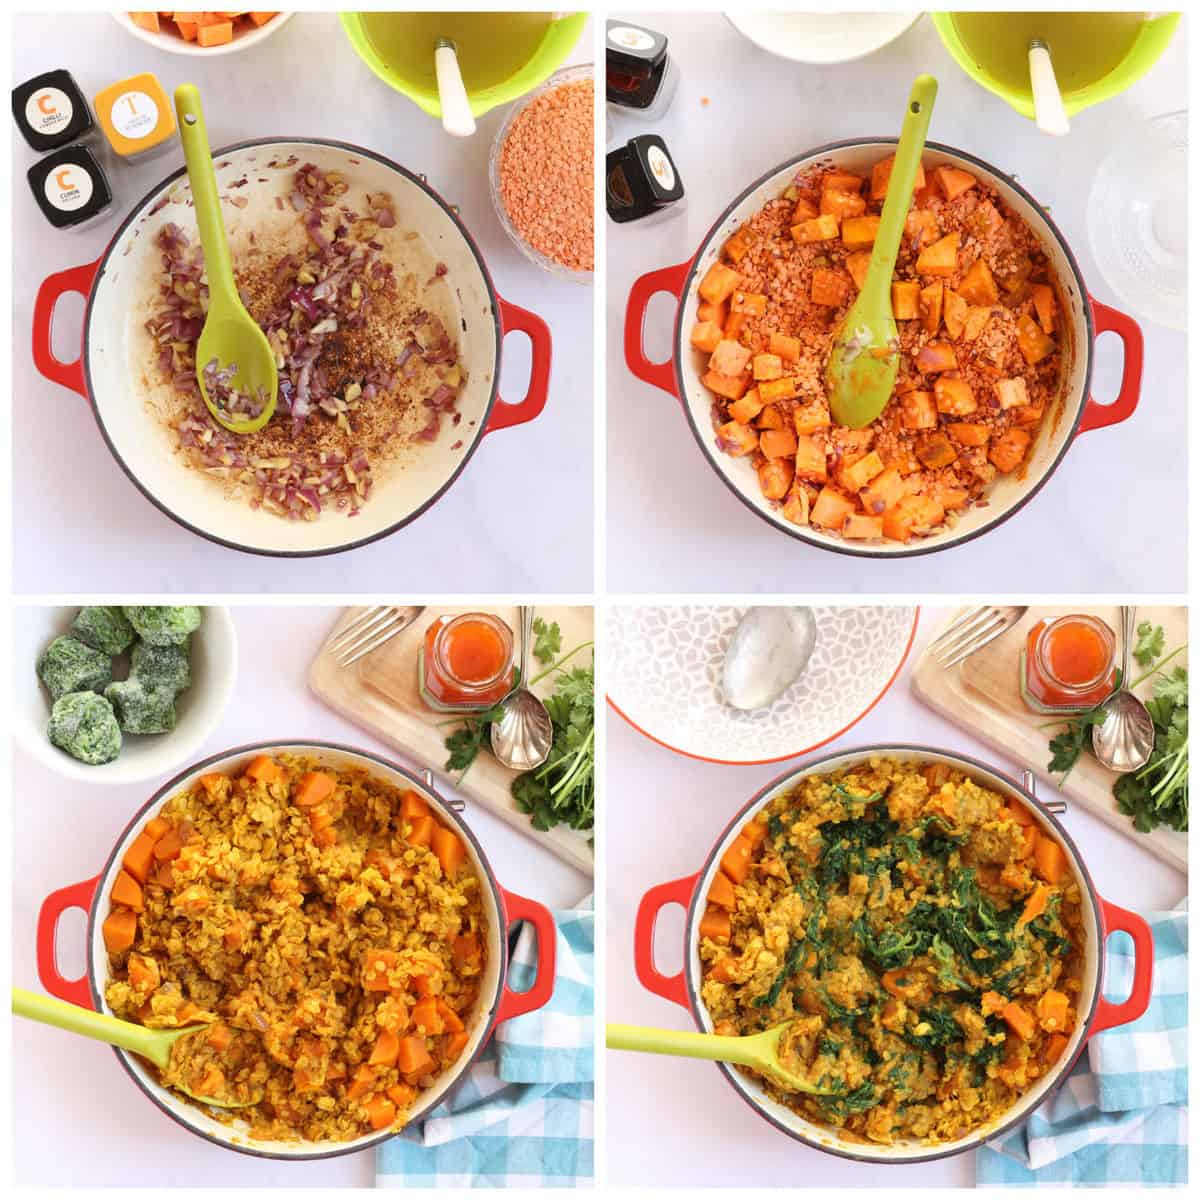 Step by step photo instructions for making the sweet potato and red lentil curry.